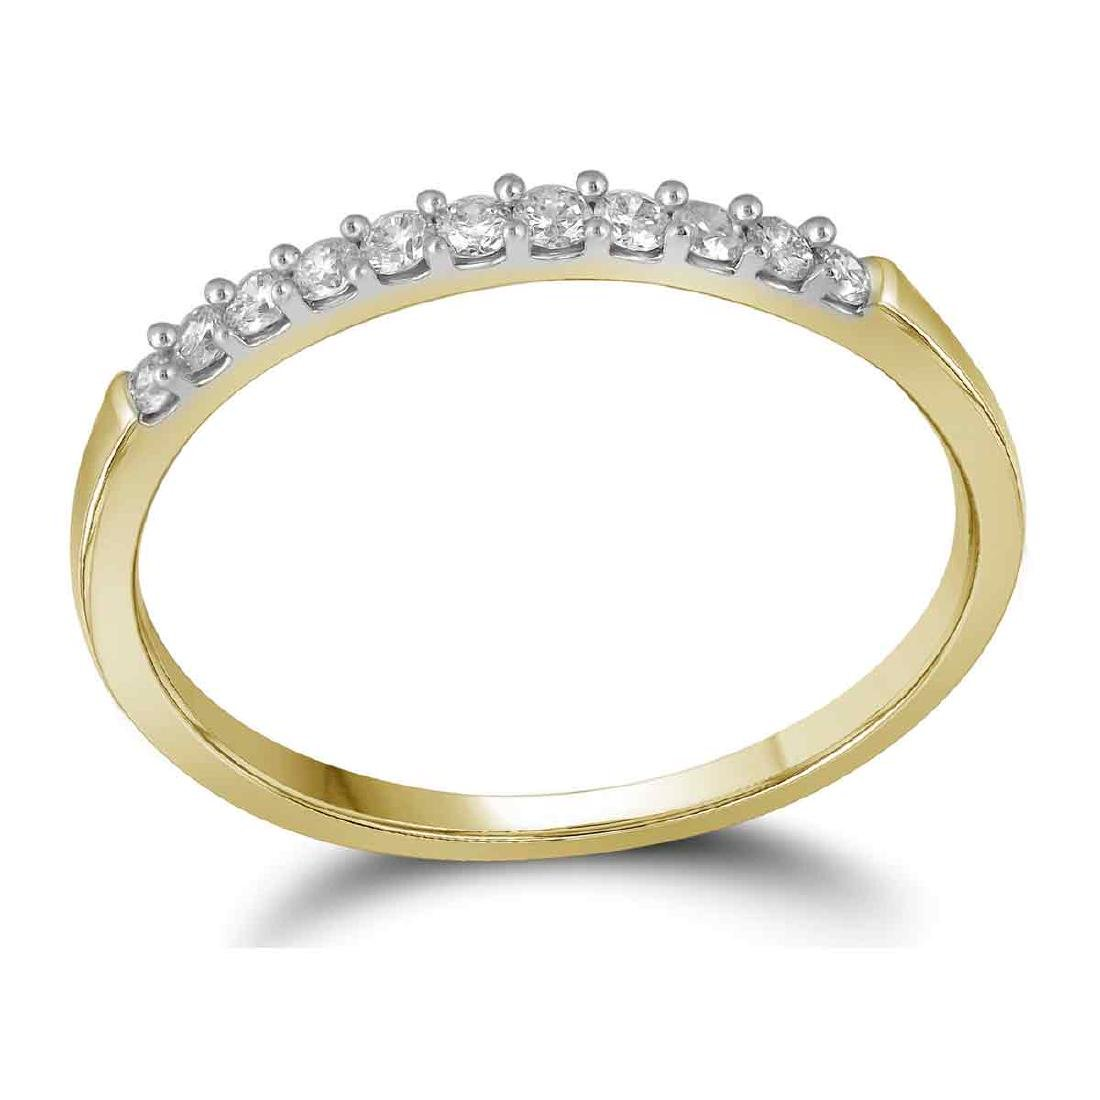 0.15 CTW Diamond Wedding Ring 14KT Yellow Gold -